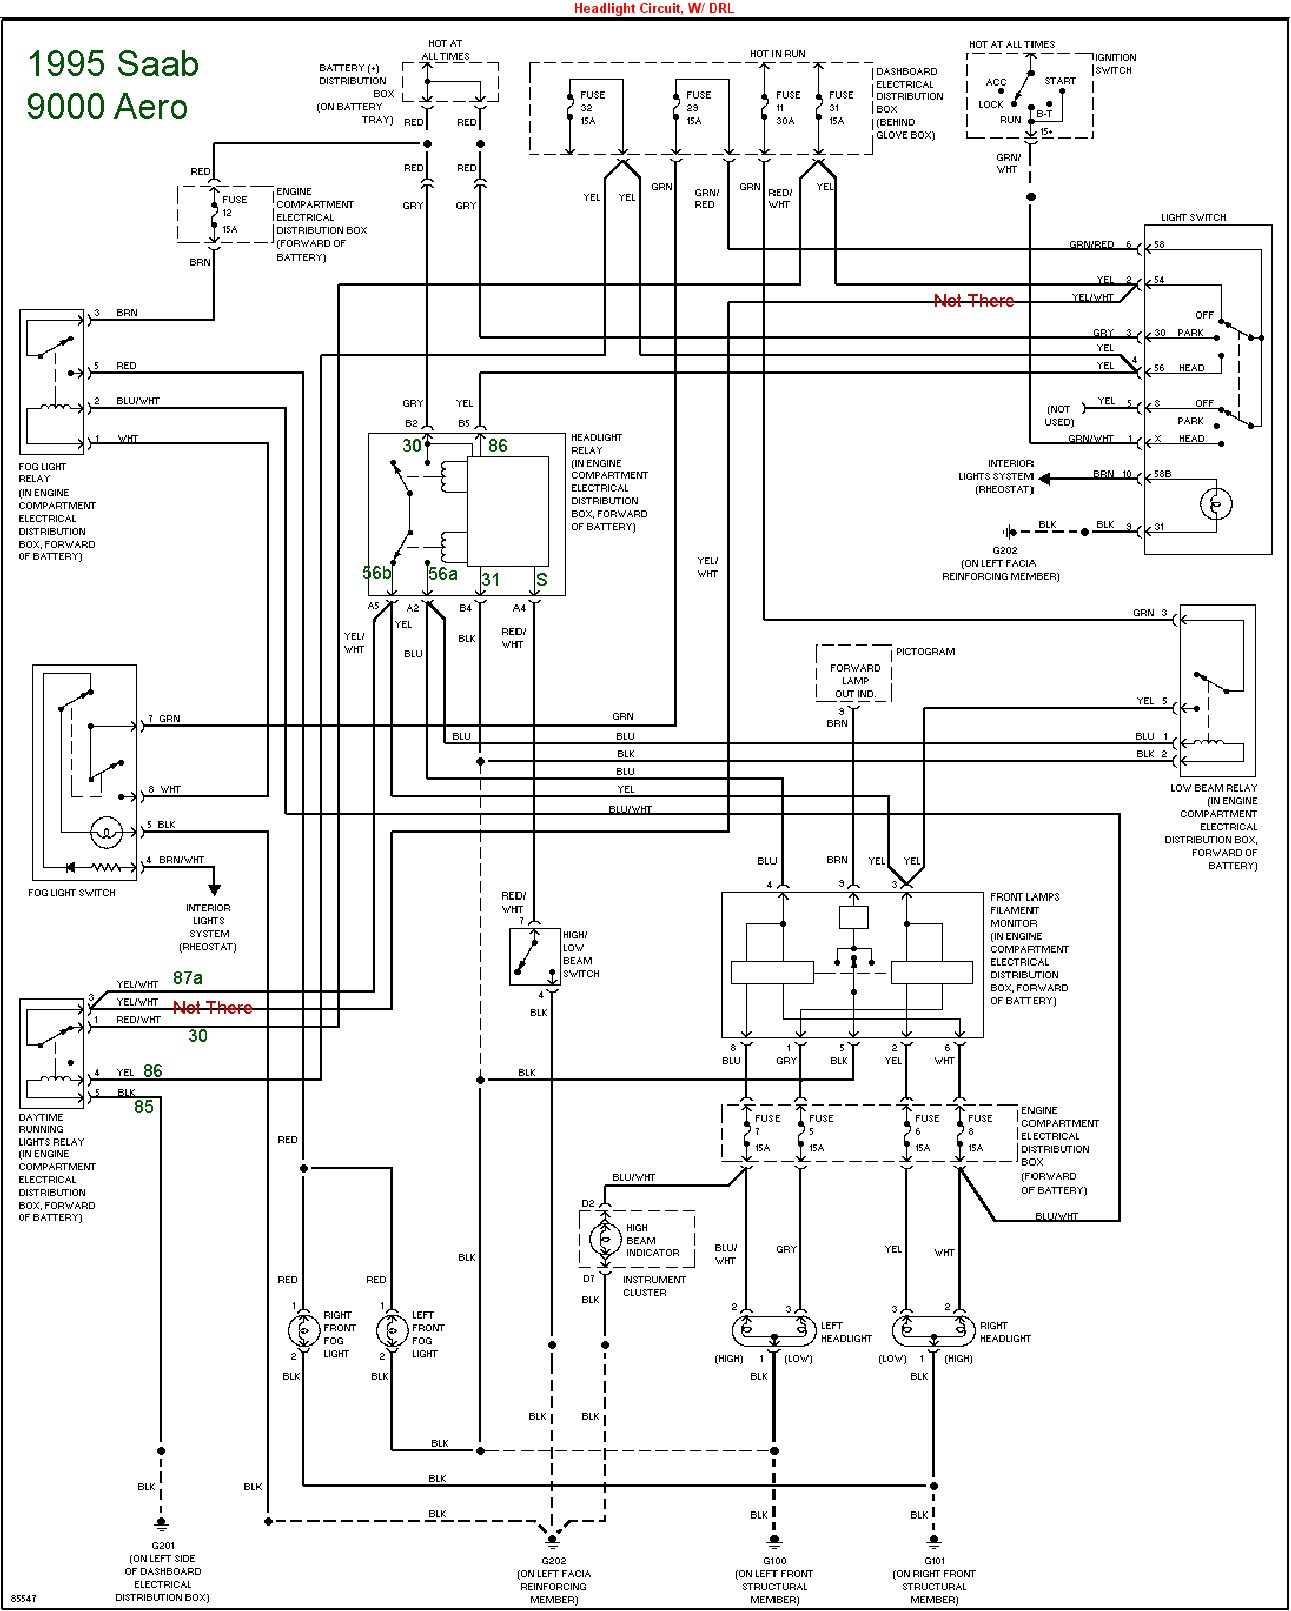 Pete Wiring Diagram For 1990 New Ford 98 Mustang Stereo